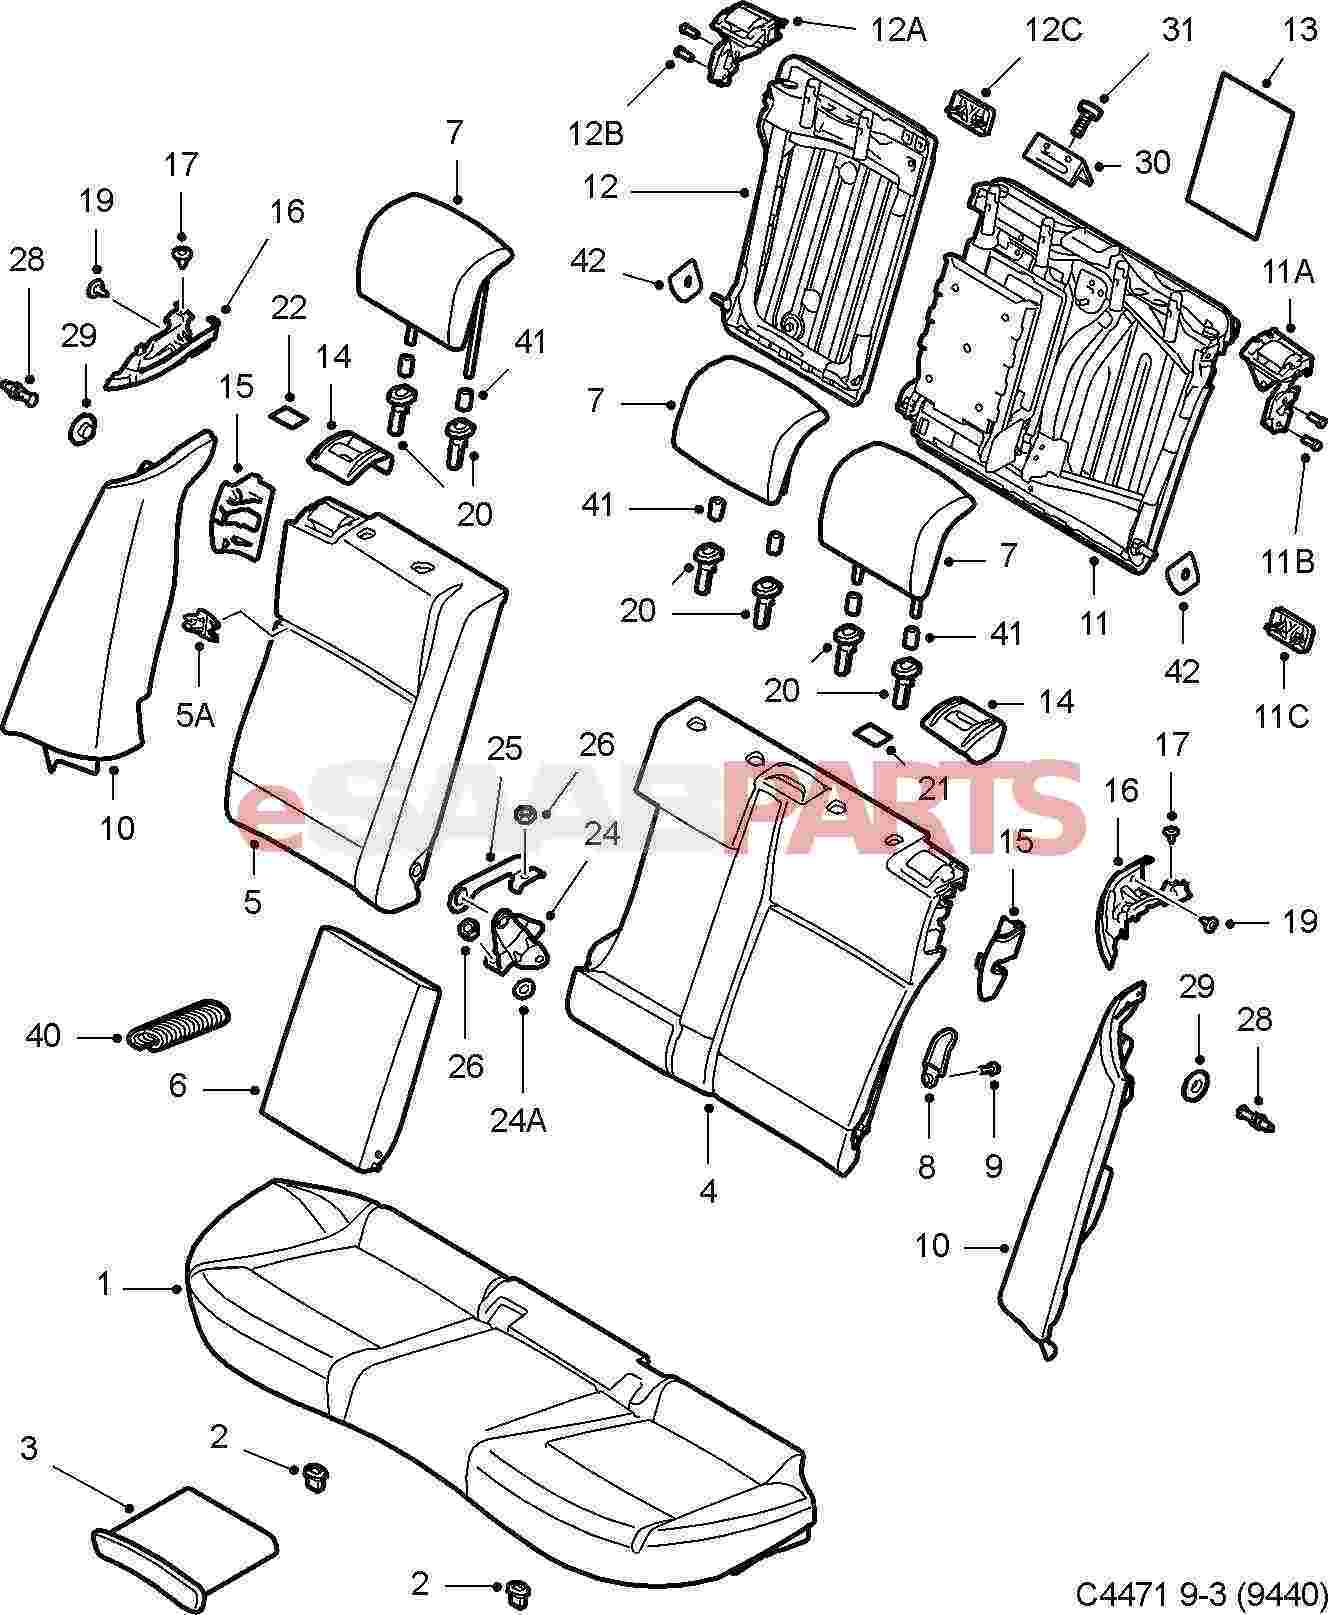 Schematics Of A Car Seat : Saab head restraint genuine parts from